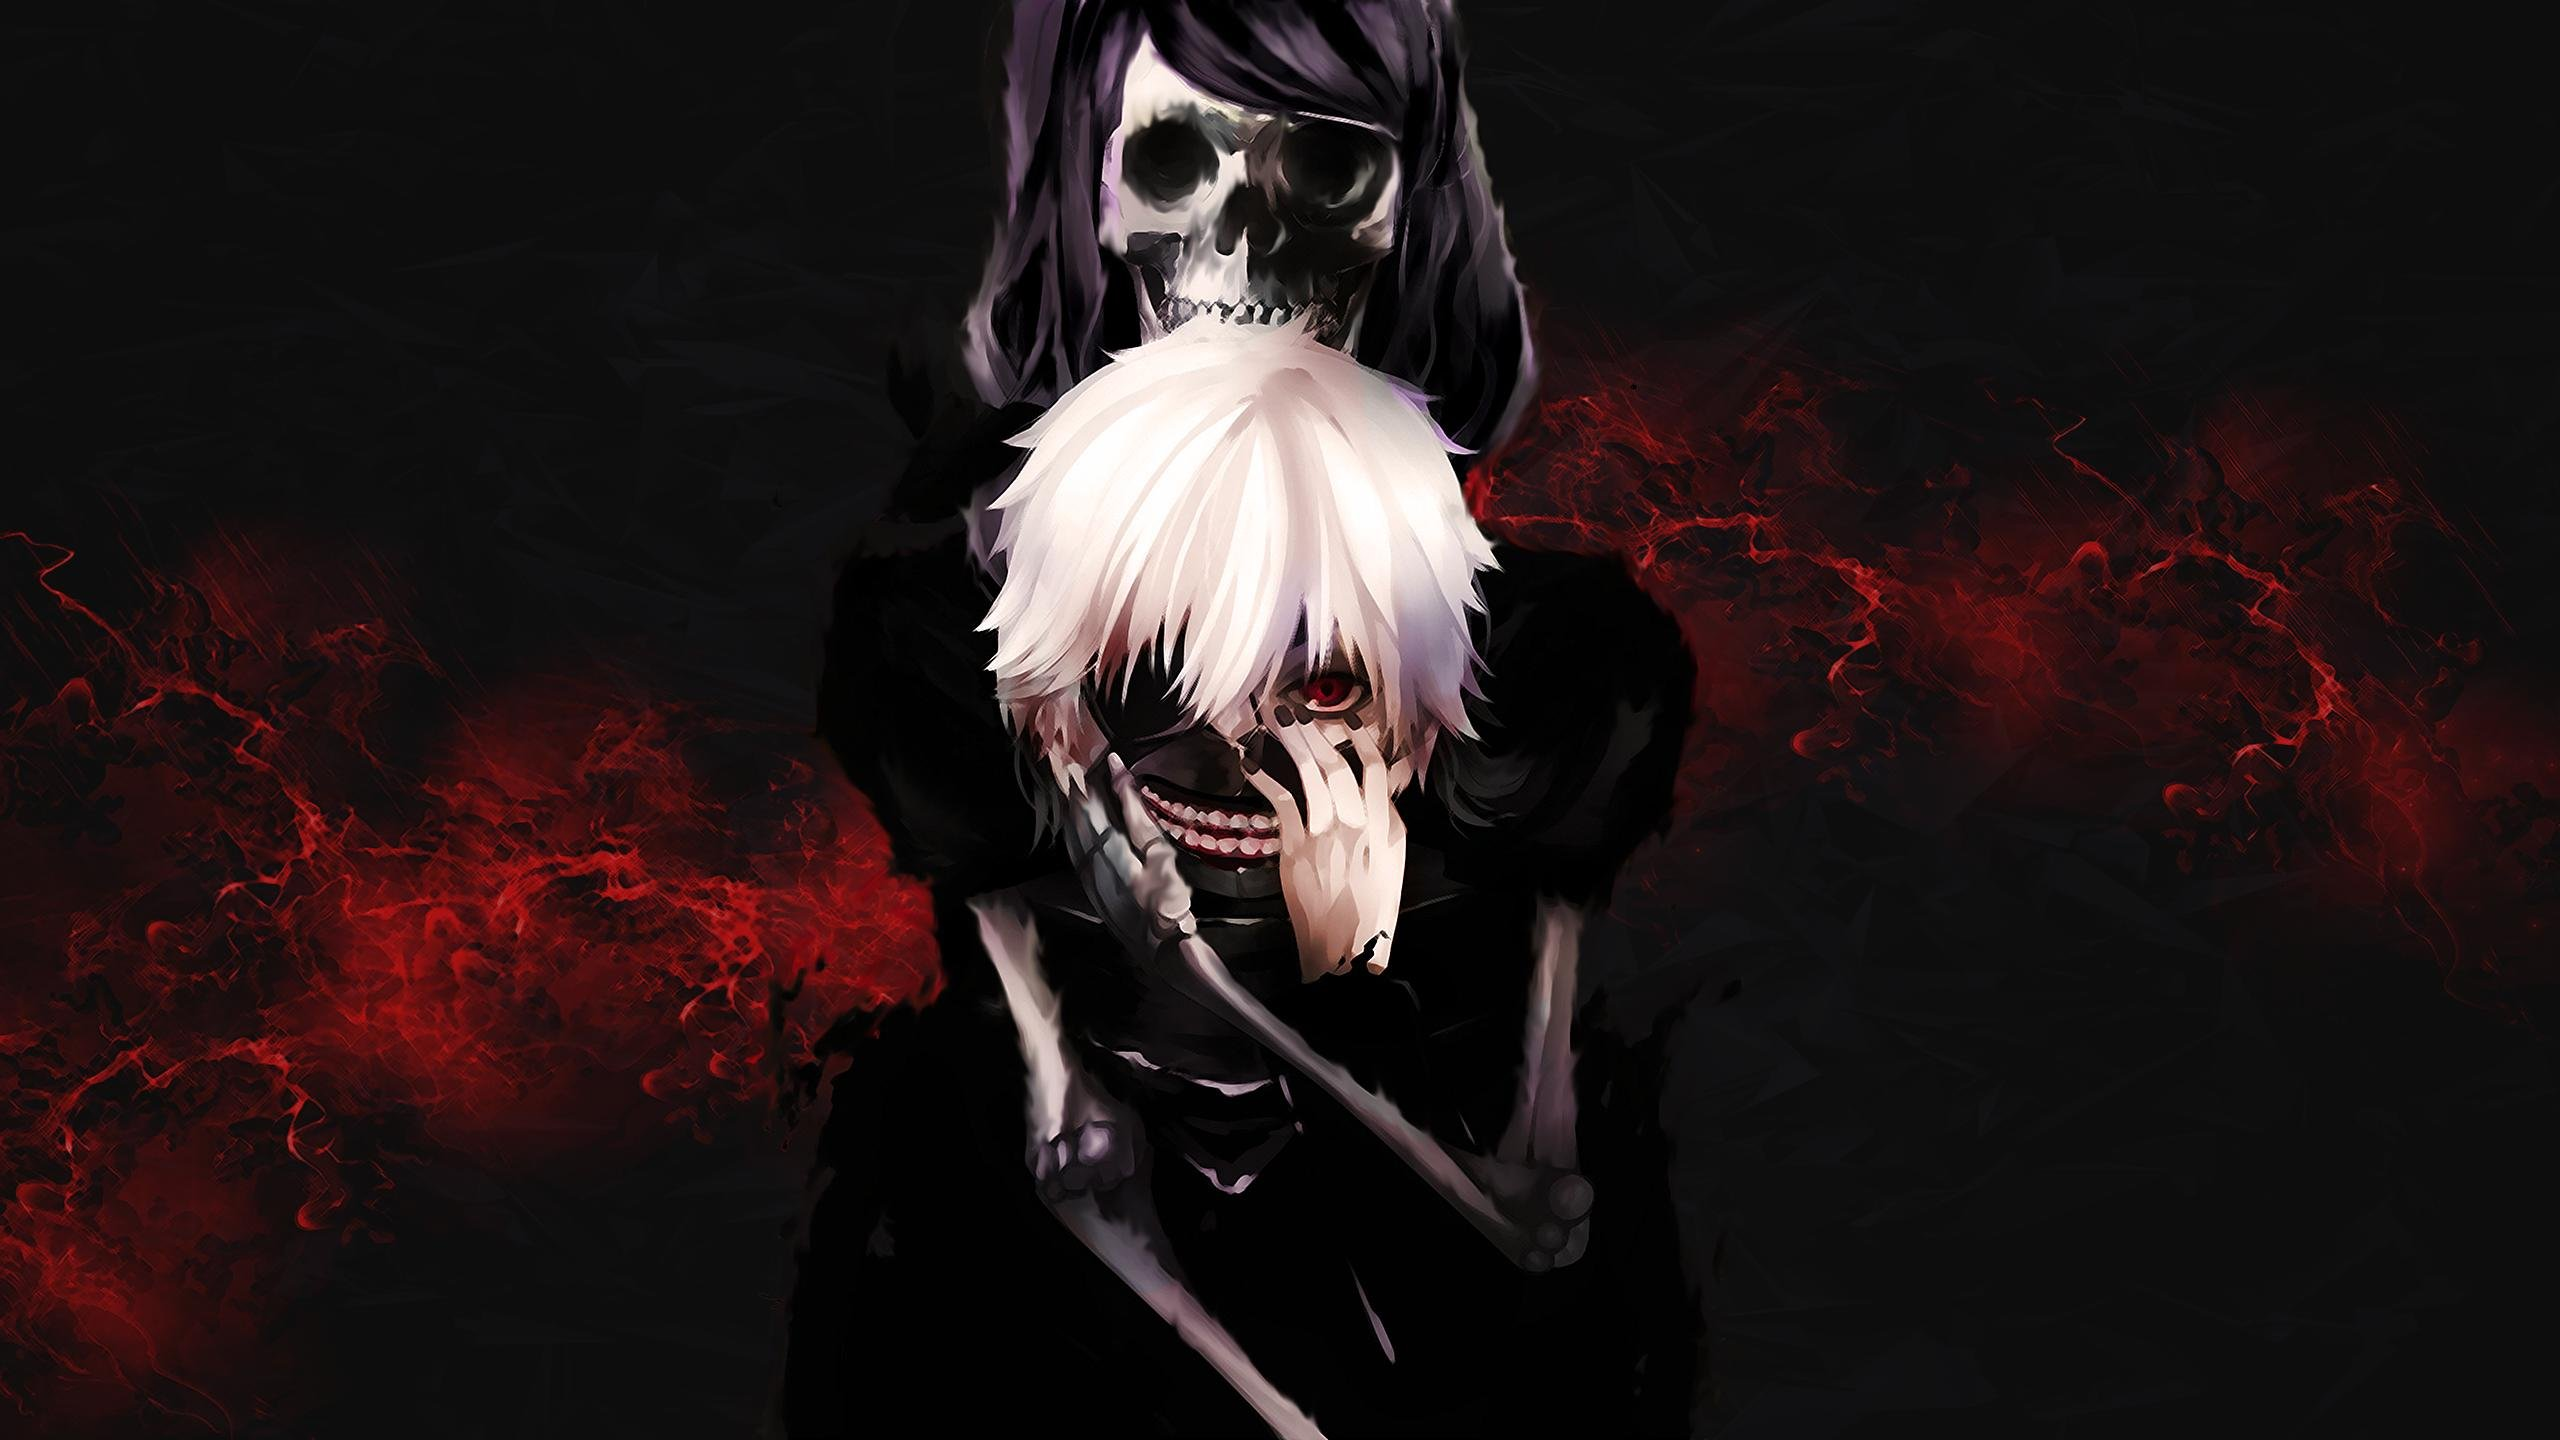 anime tokyo ghoul anime boys kaneki ken hd wallpapers desktop 2560x1440